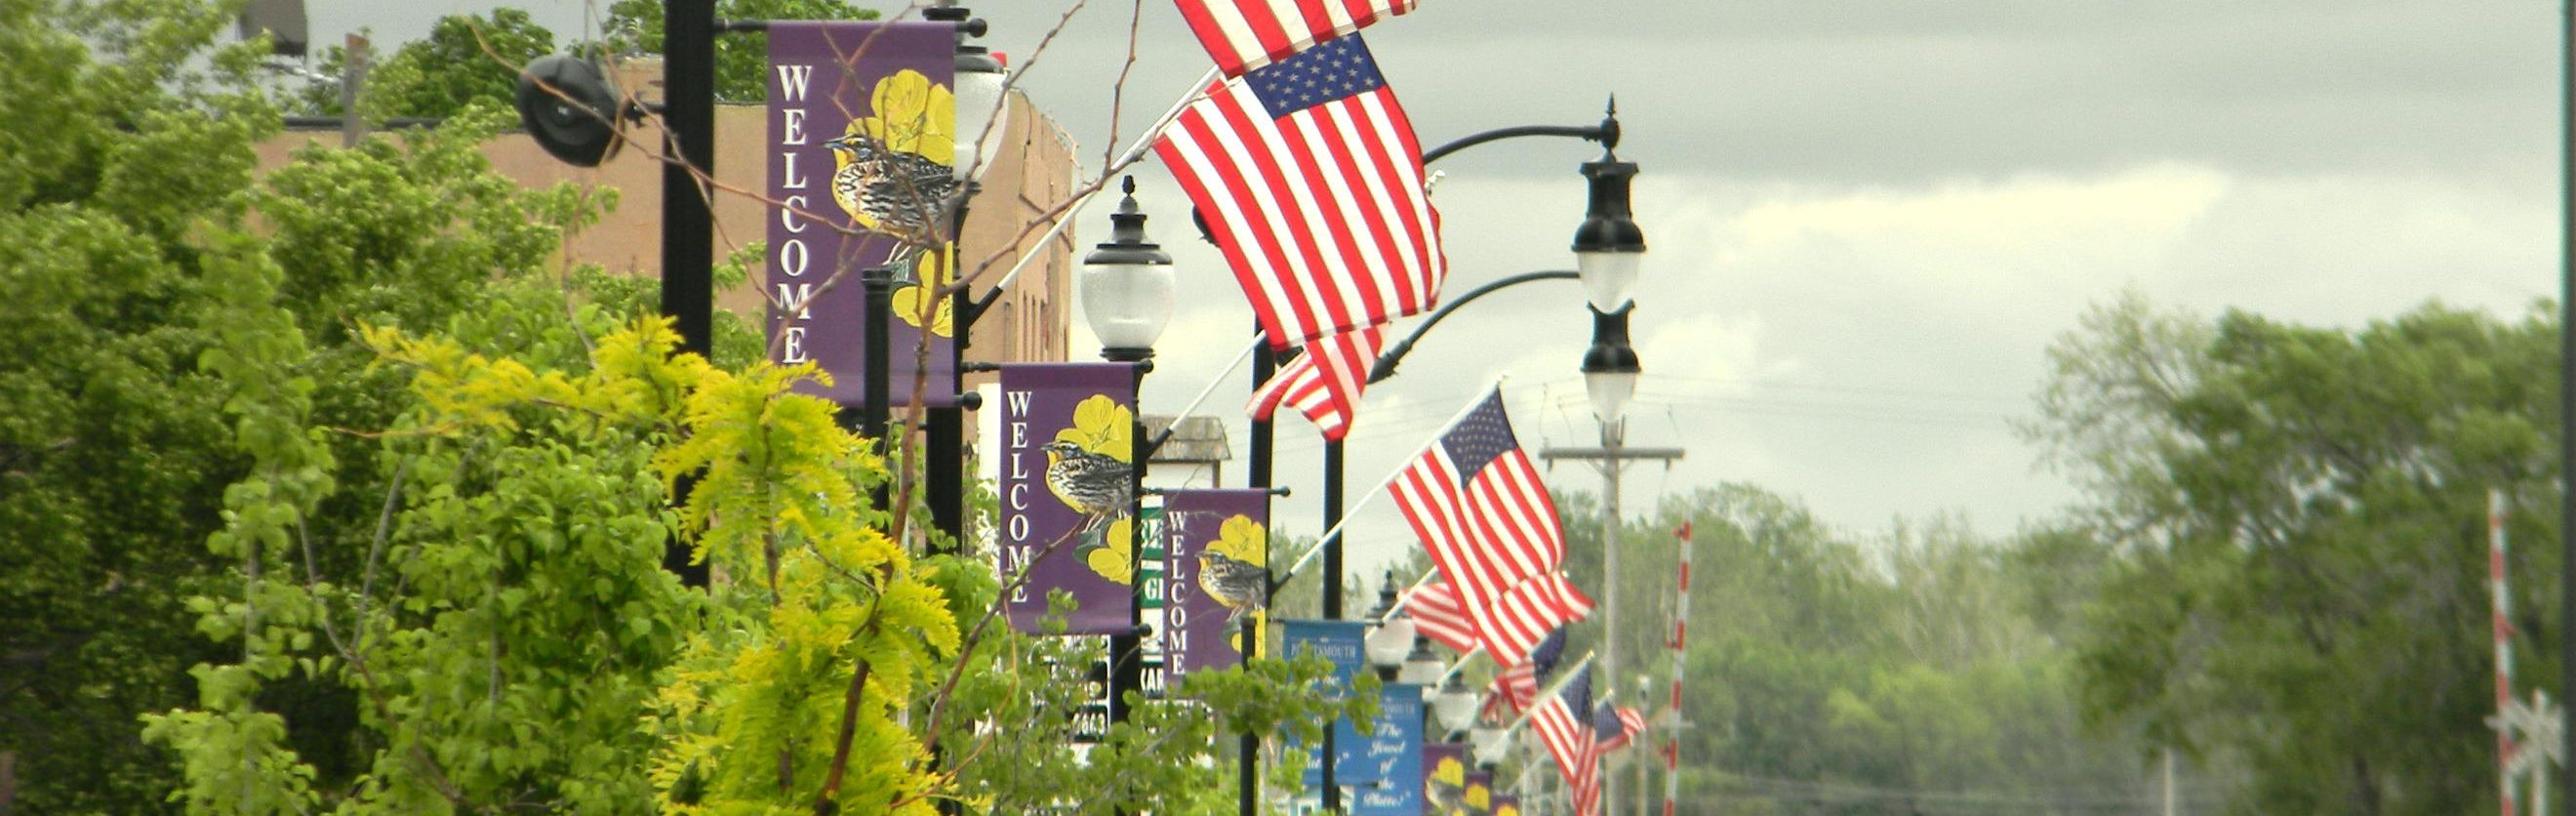 PL mainstreet flags